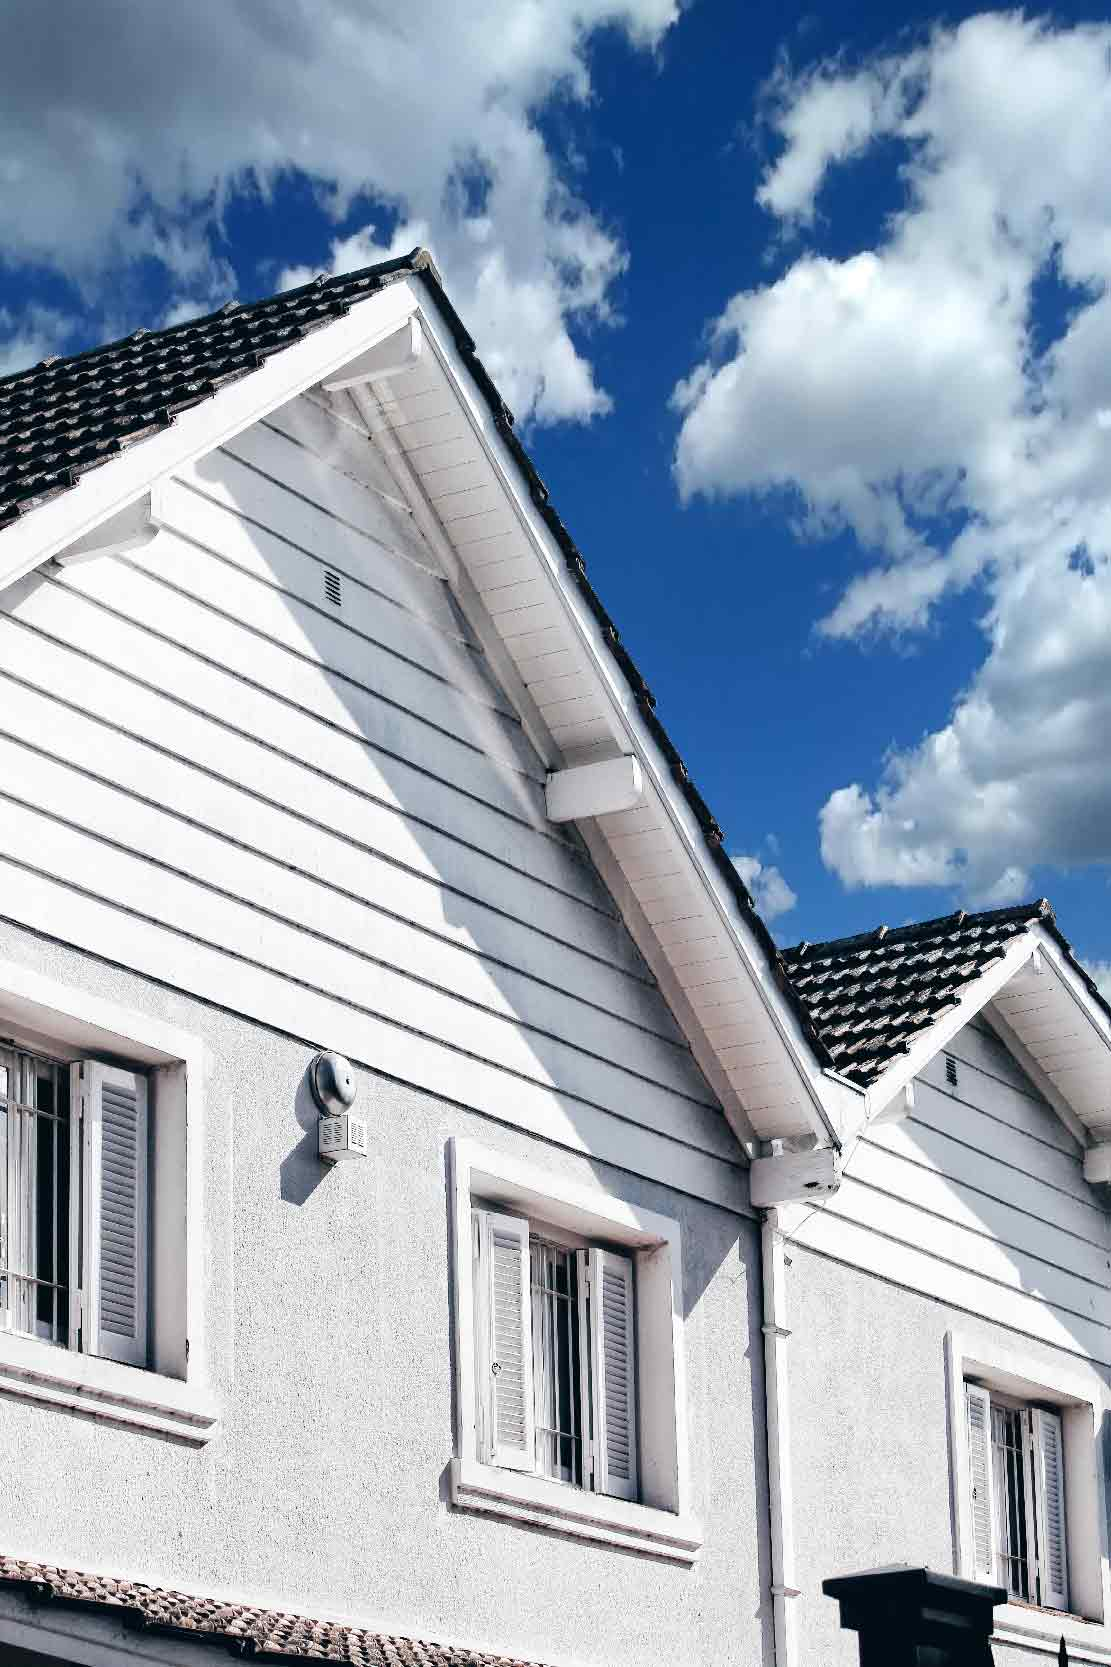 photo of gables for blog on cost of loft conversions